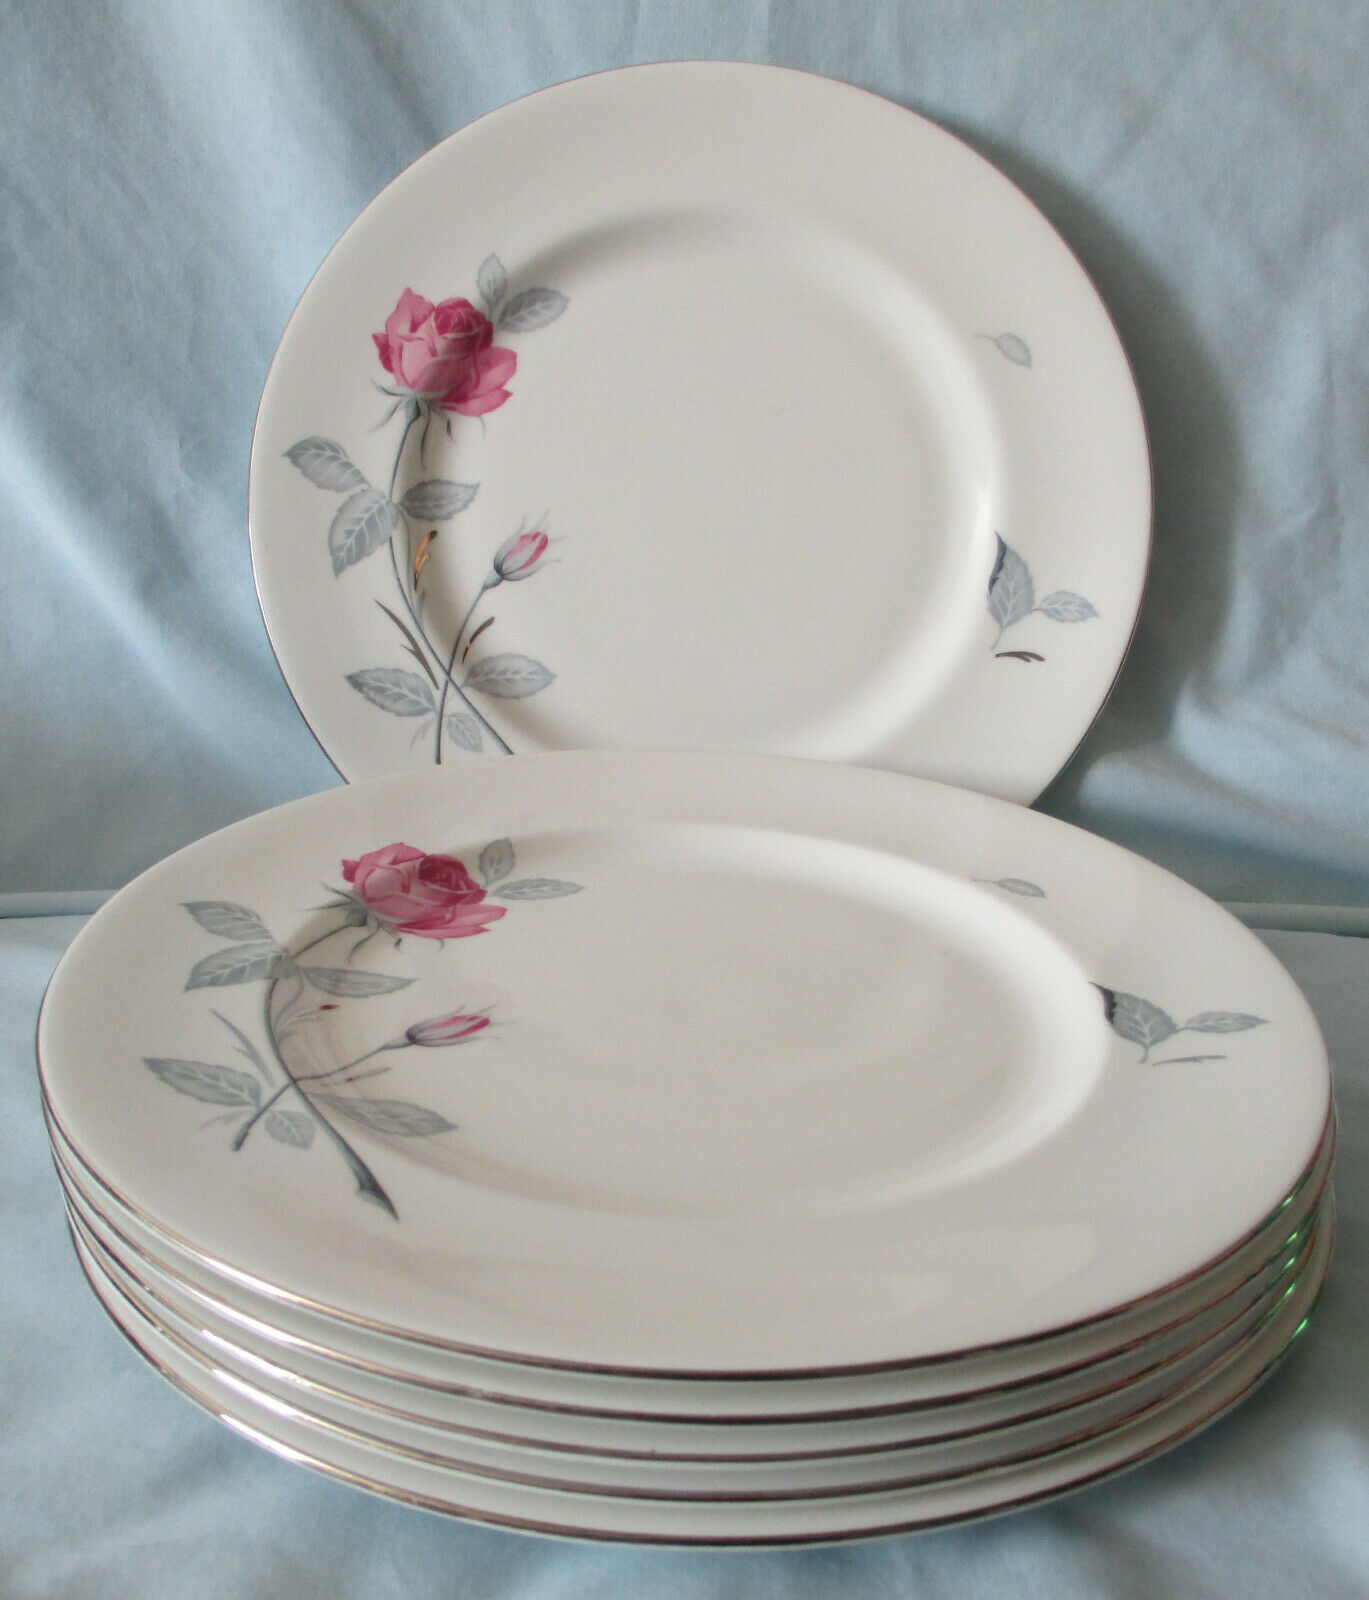 Zylstra Trent Rose England Dinner Plate Set of 6